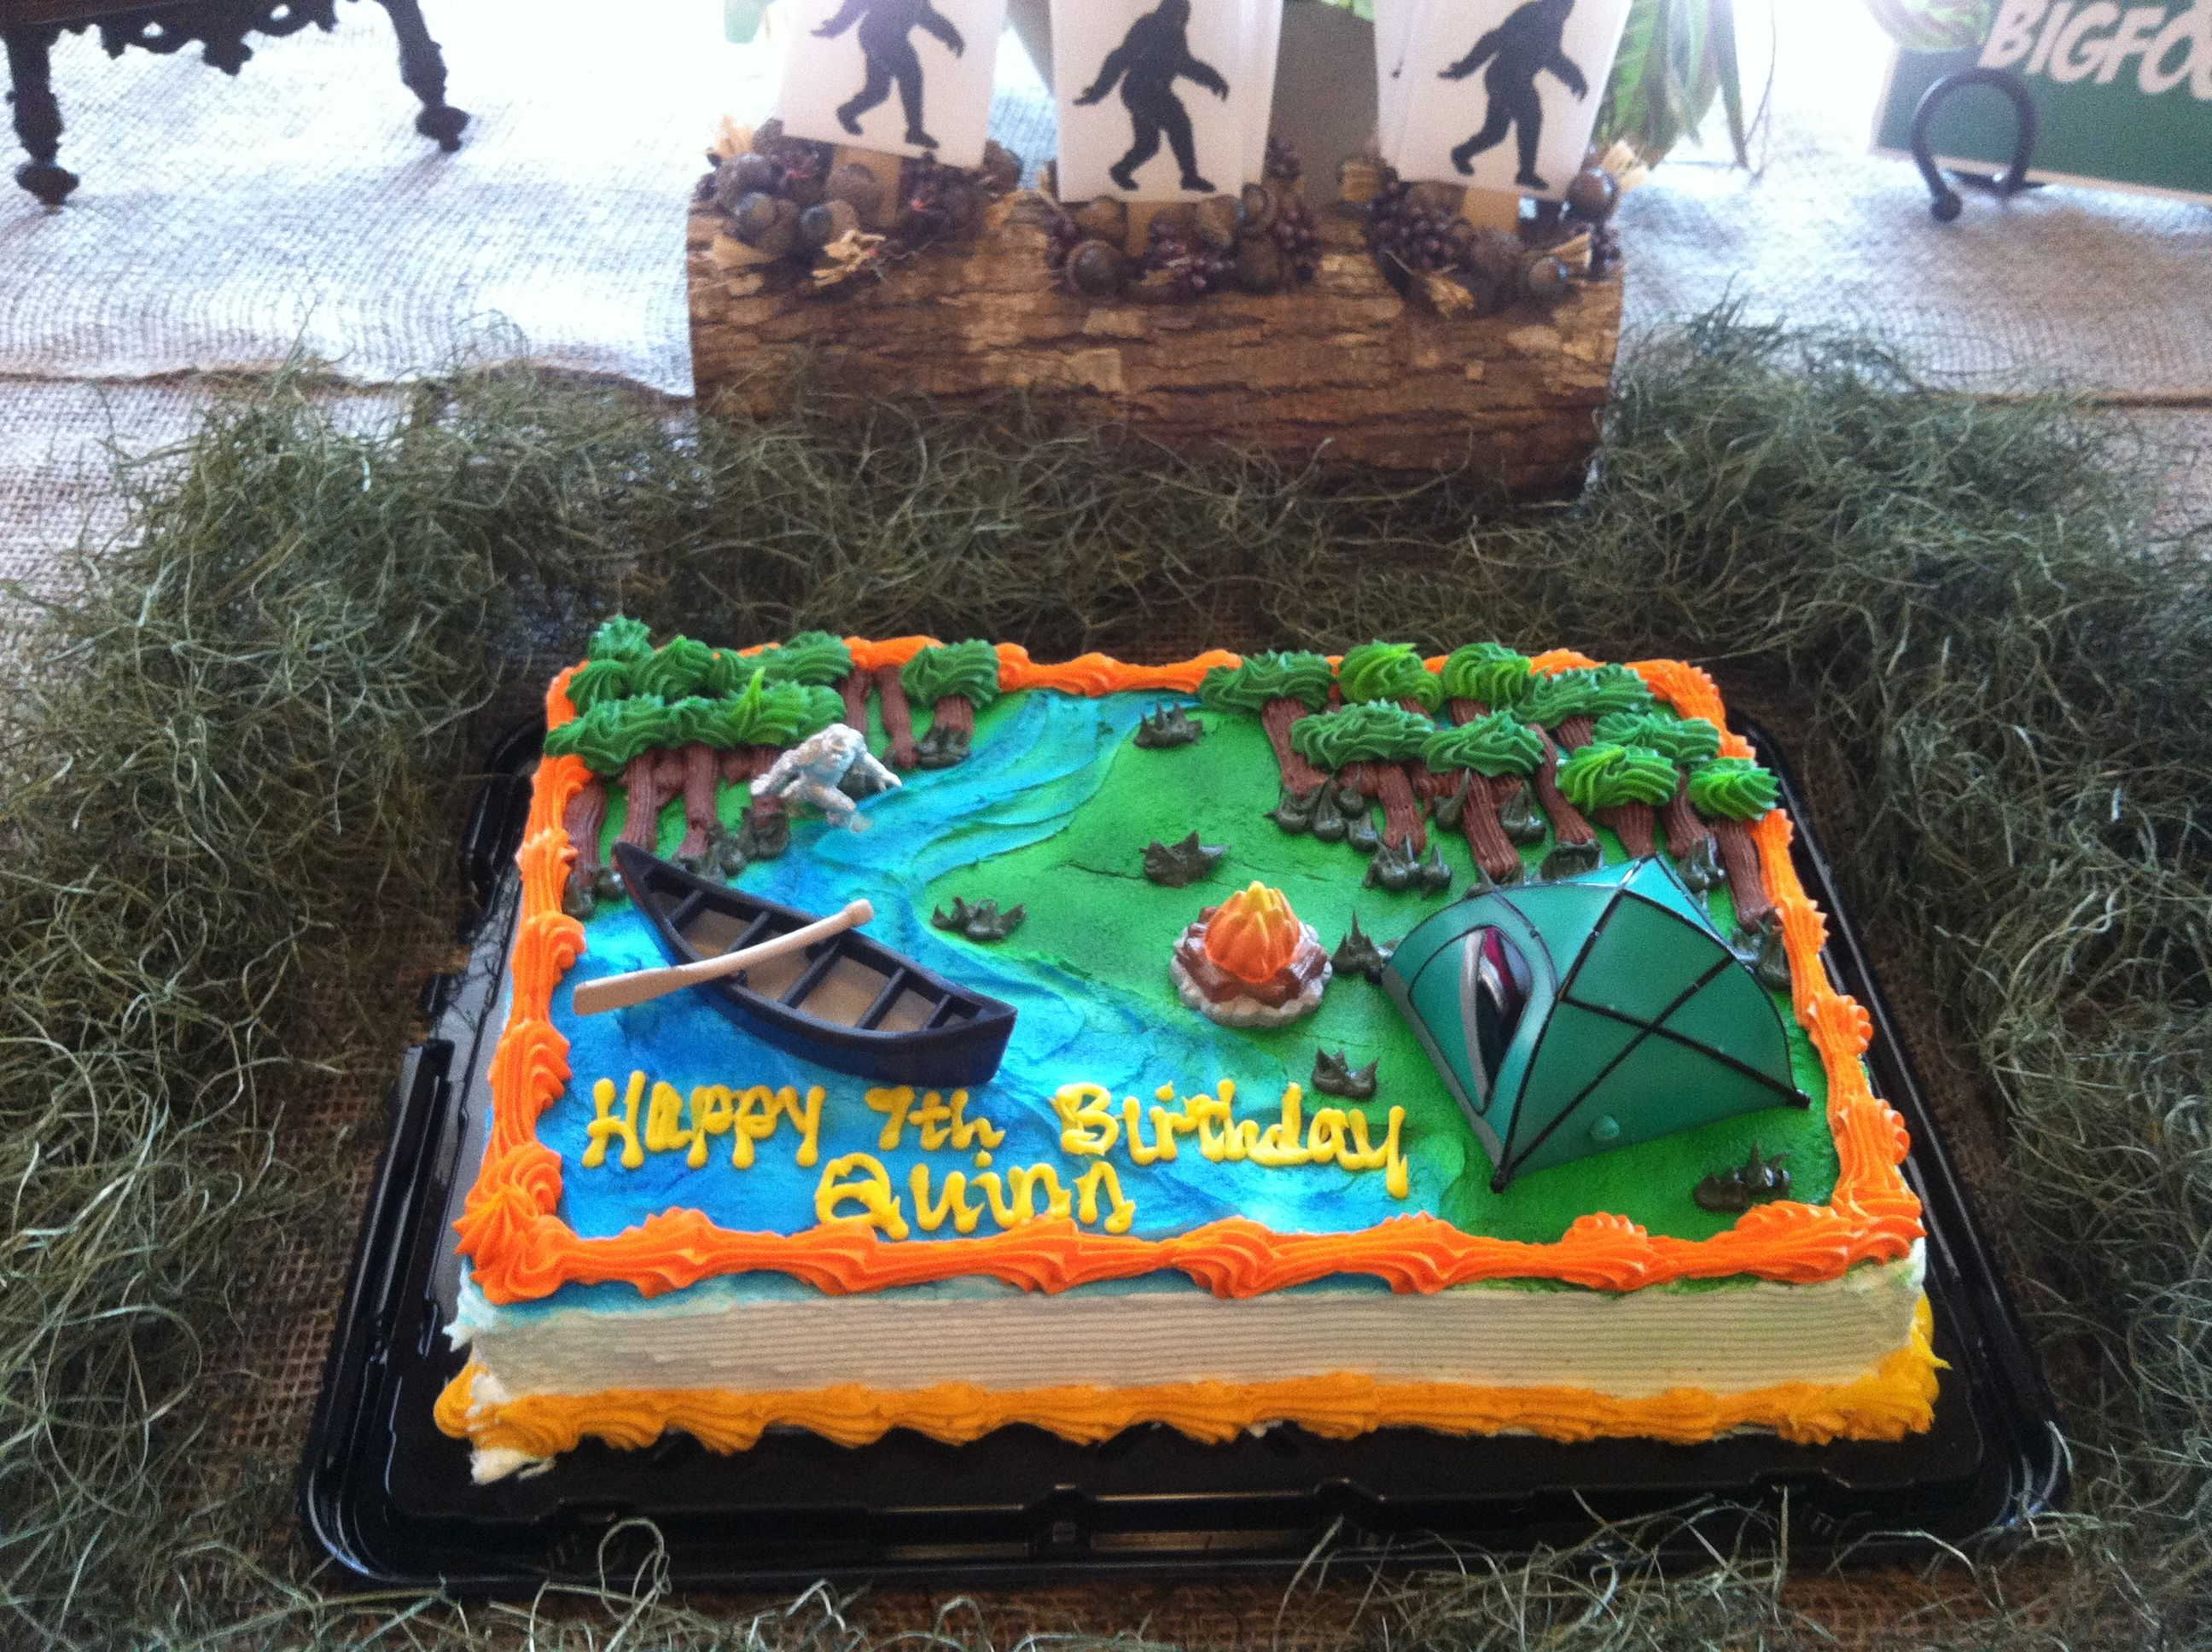 Yes Its Hard To Find A Bigfoot Cake At Your Local Bakerybut Kroger Has Camping Themed That Worked Just Fine We Added The Little Figure Of